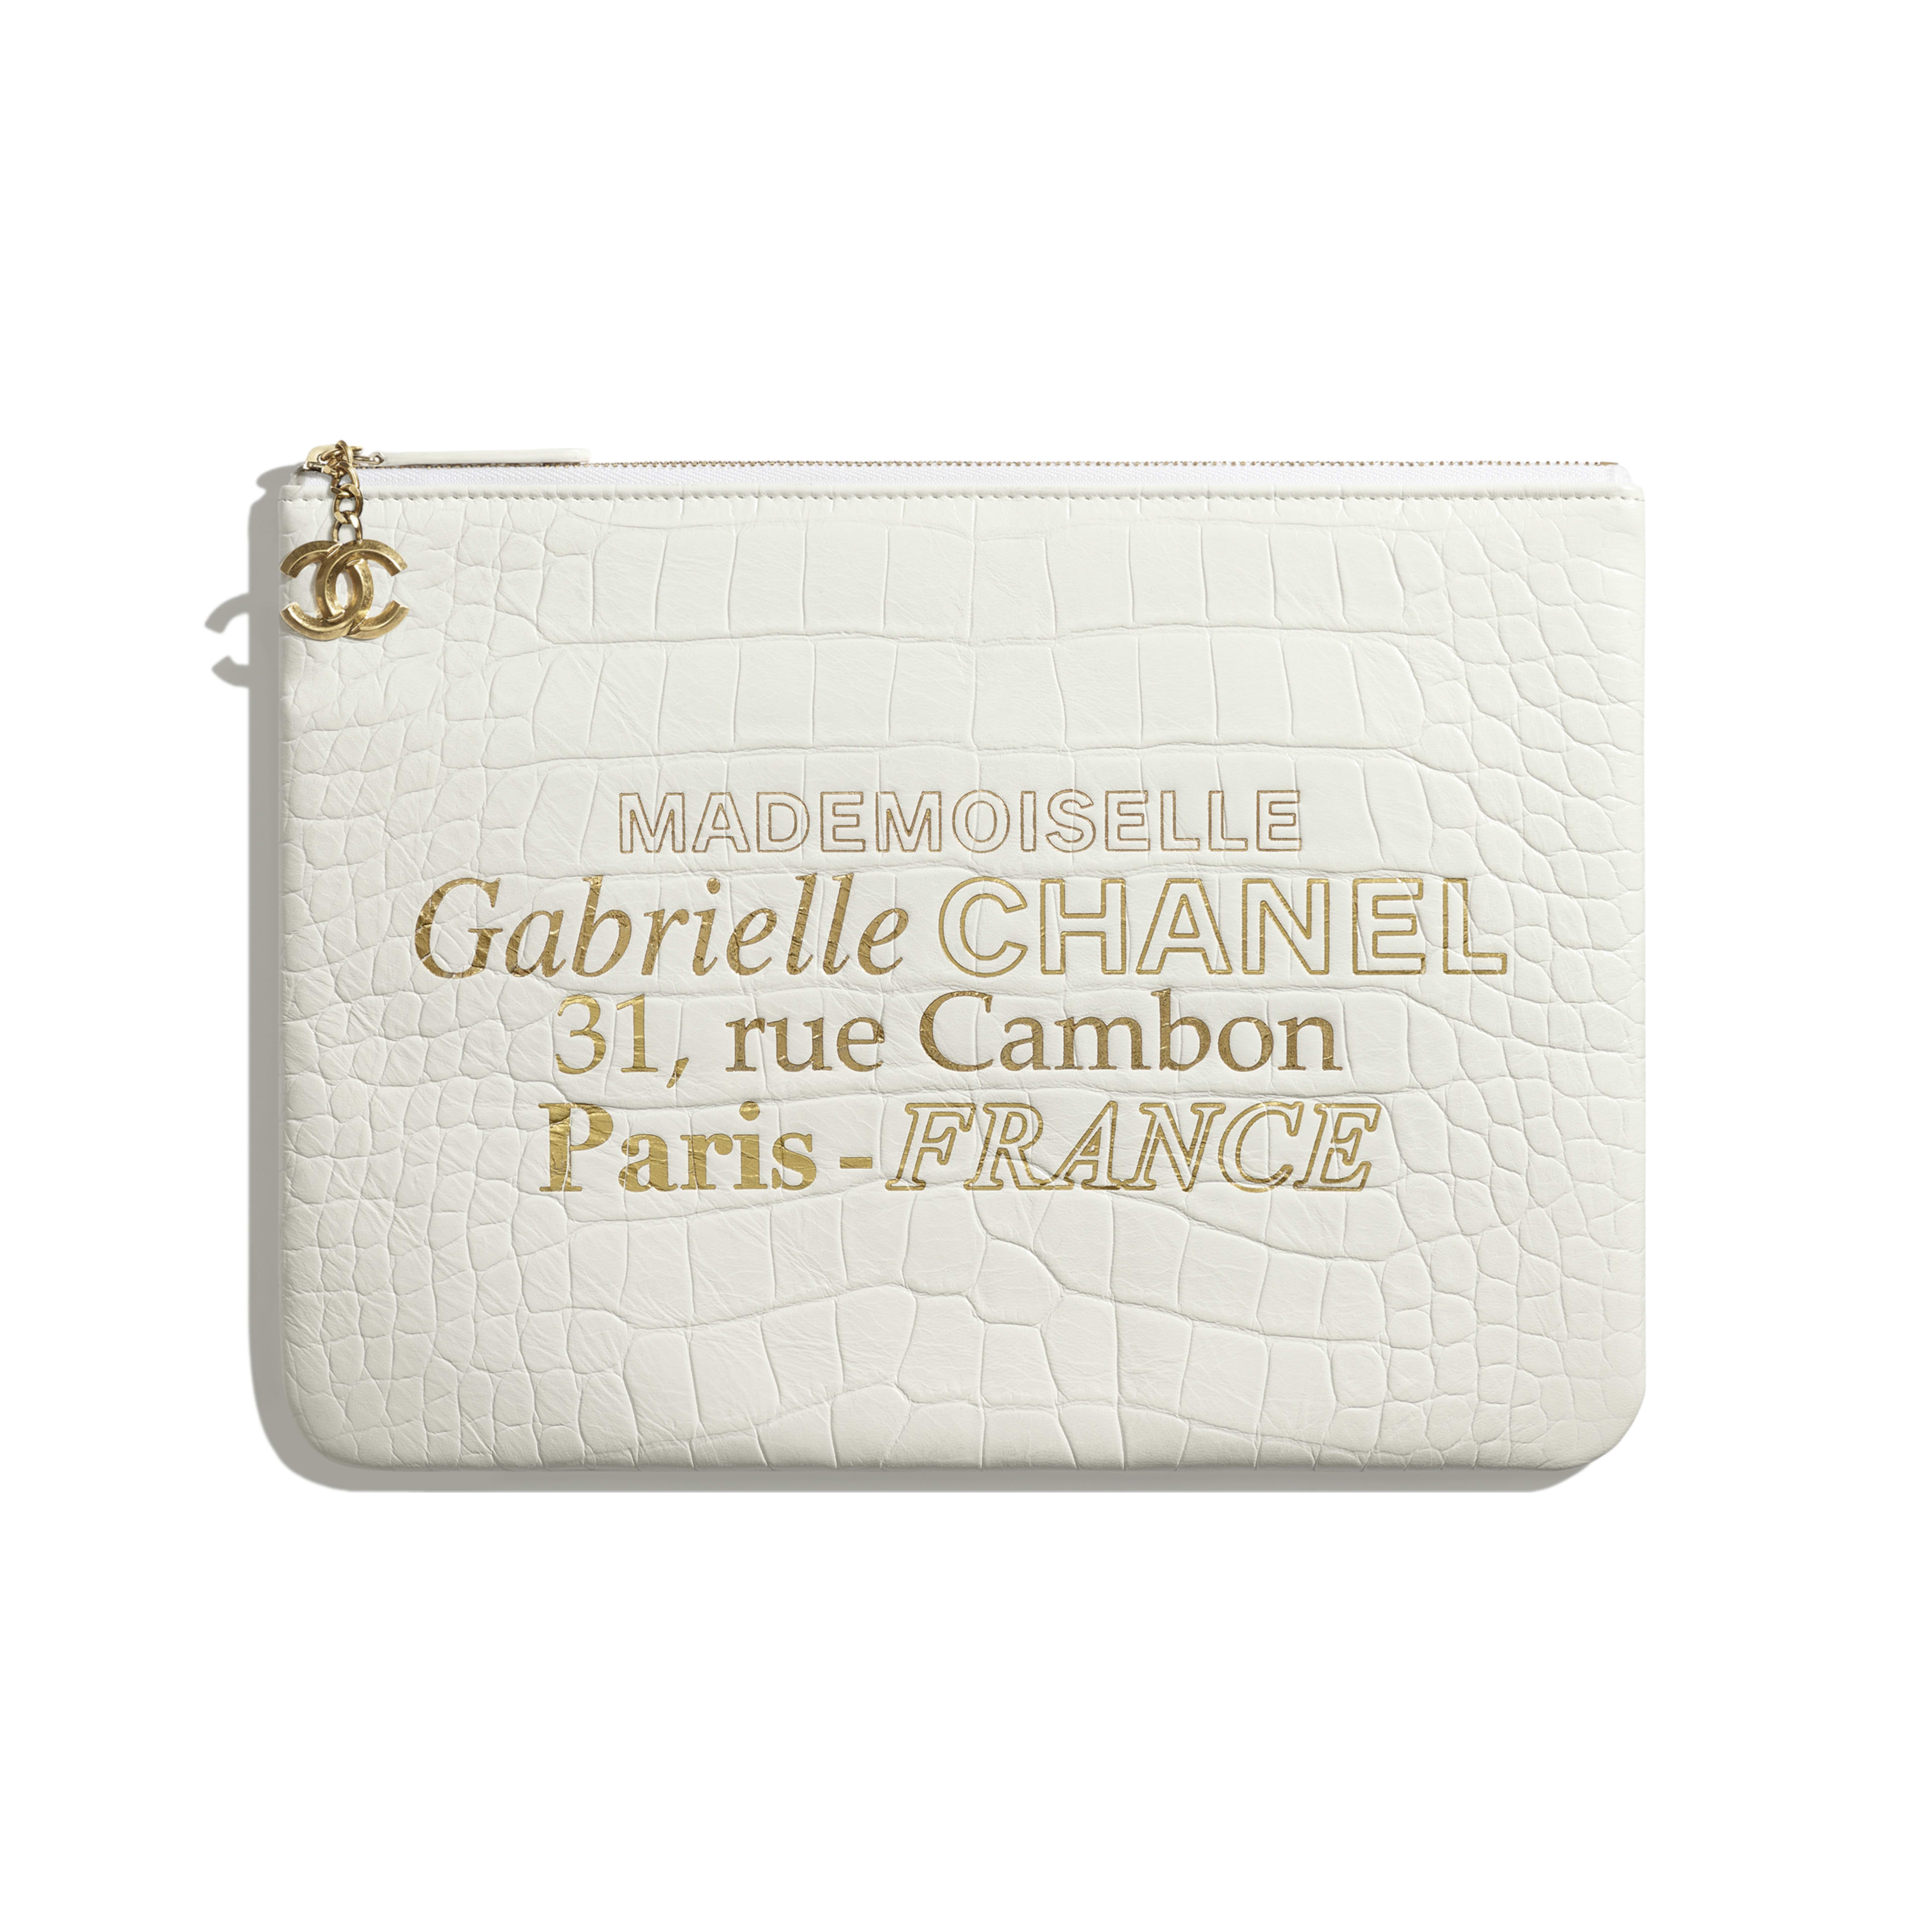 Pouch - White & Gold - Crocodile Embossed Calfskin & Gold-Tone Metal - Default view - see full sized version